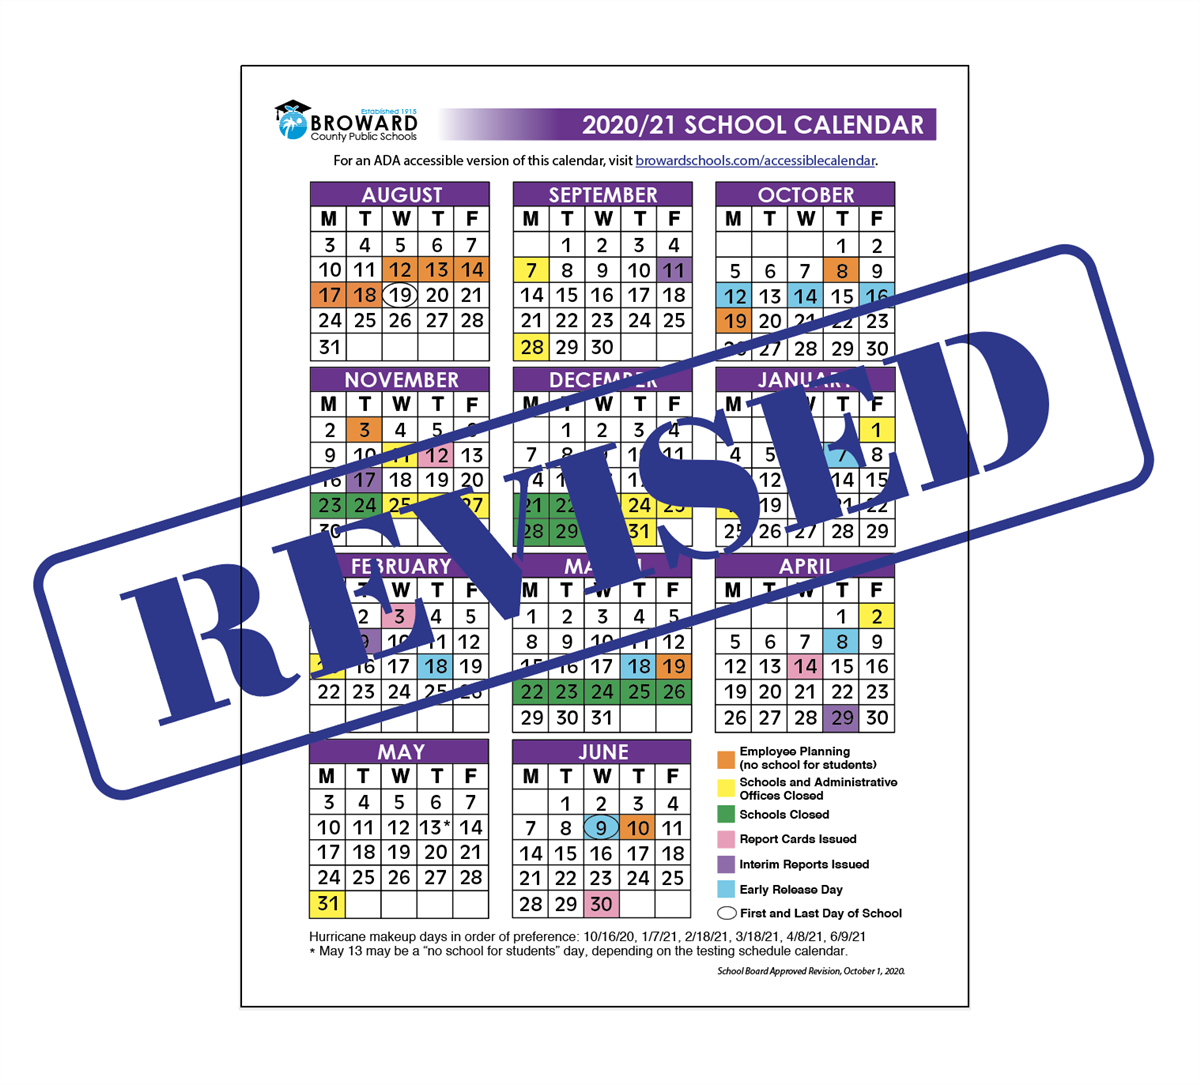 School Board Approves Minor Revisions to the 2020/21 School Calendar